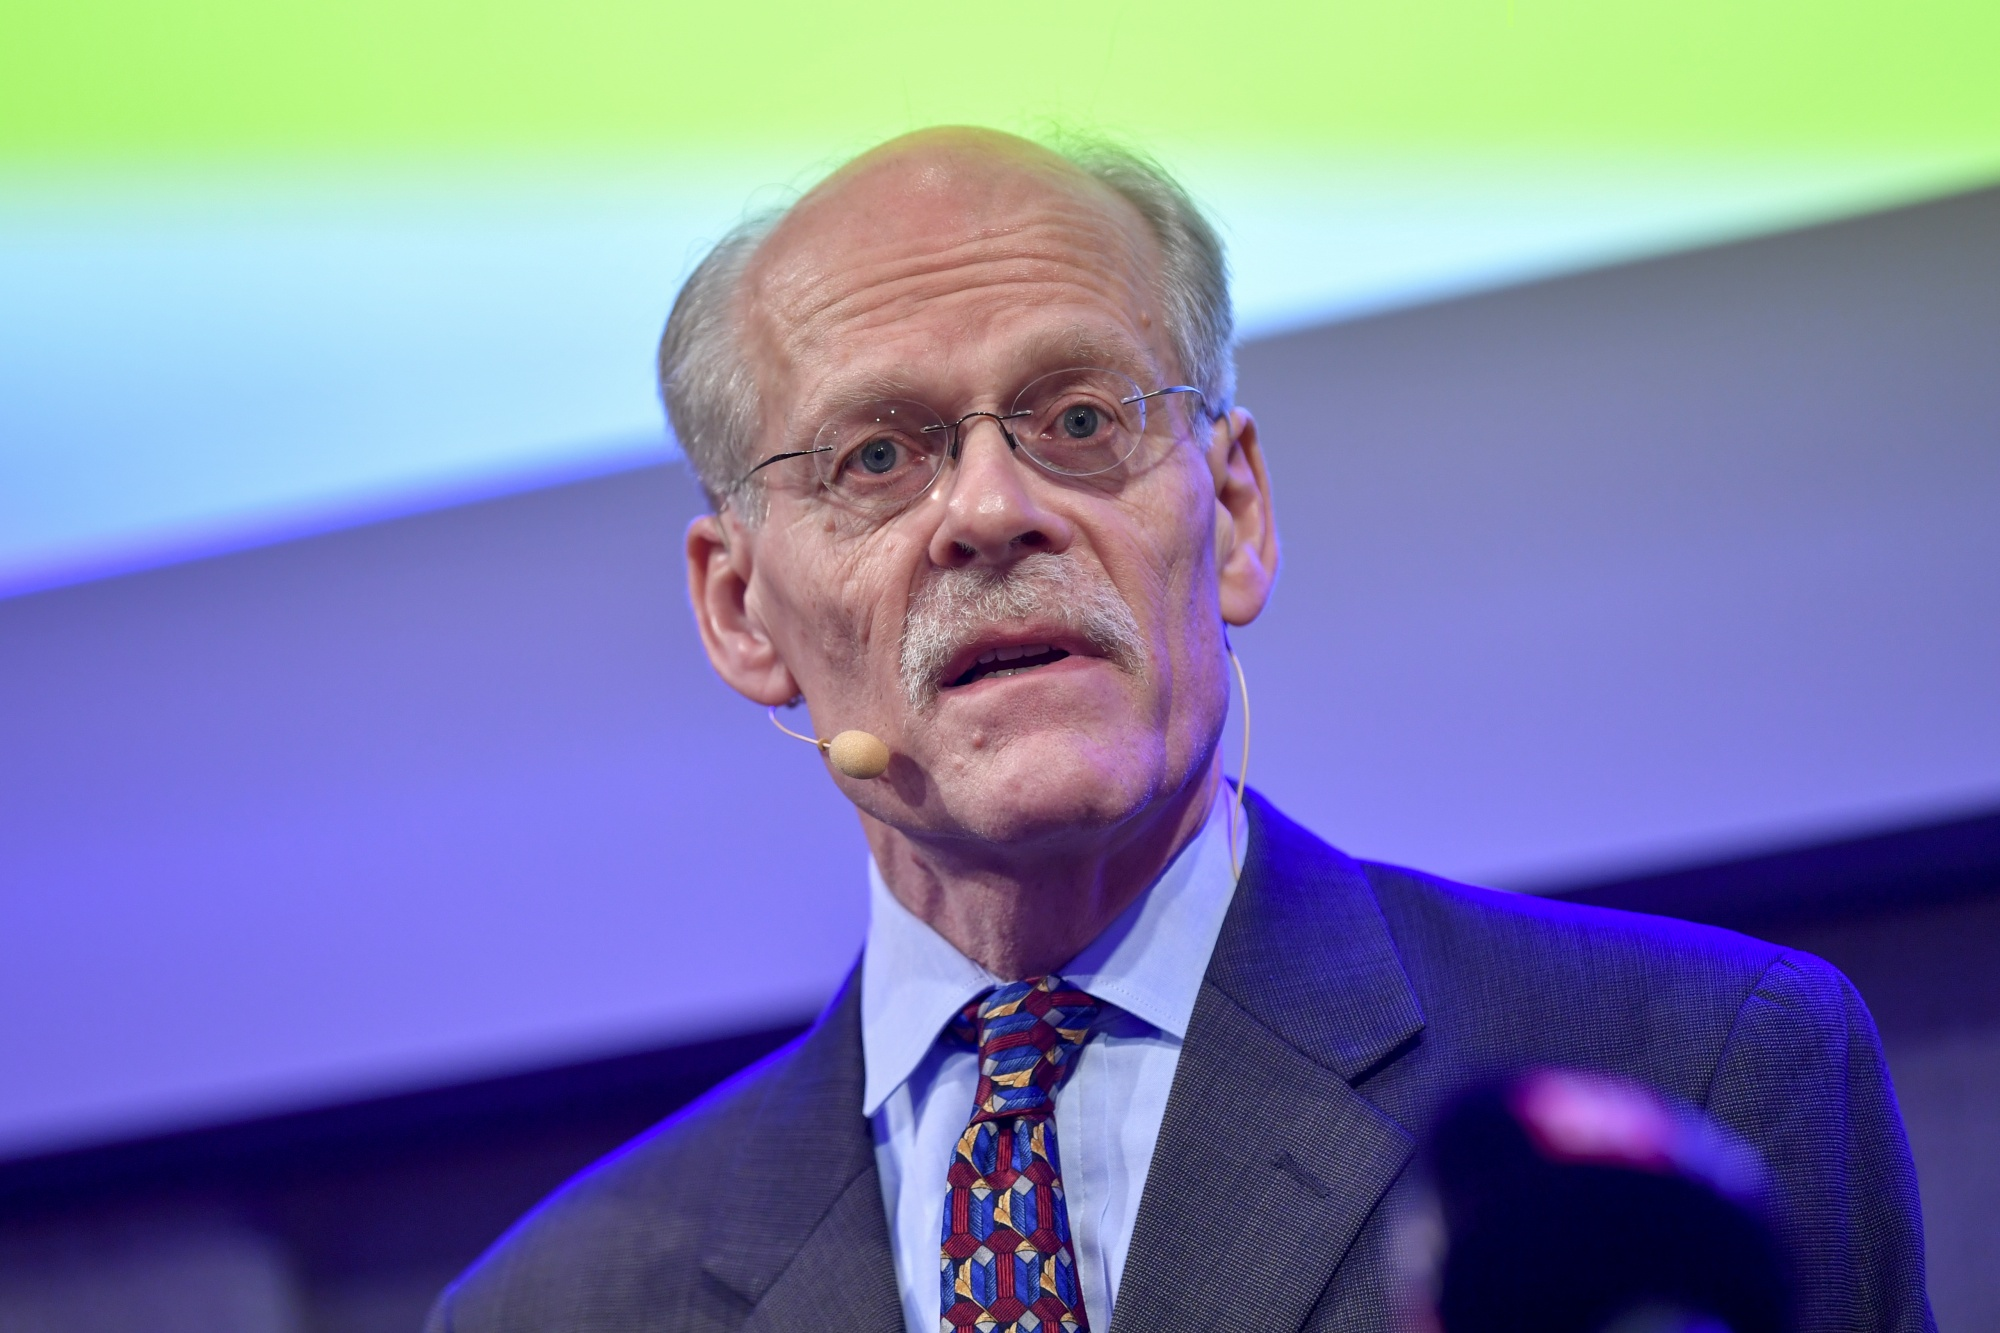 Sveriges Riksbank Governor Stefan Ingves Ends Subzero Experiment in Global Test Case